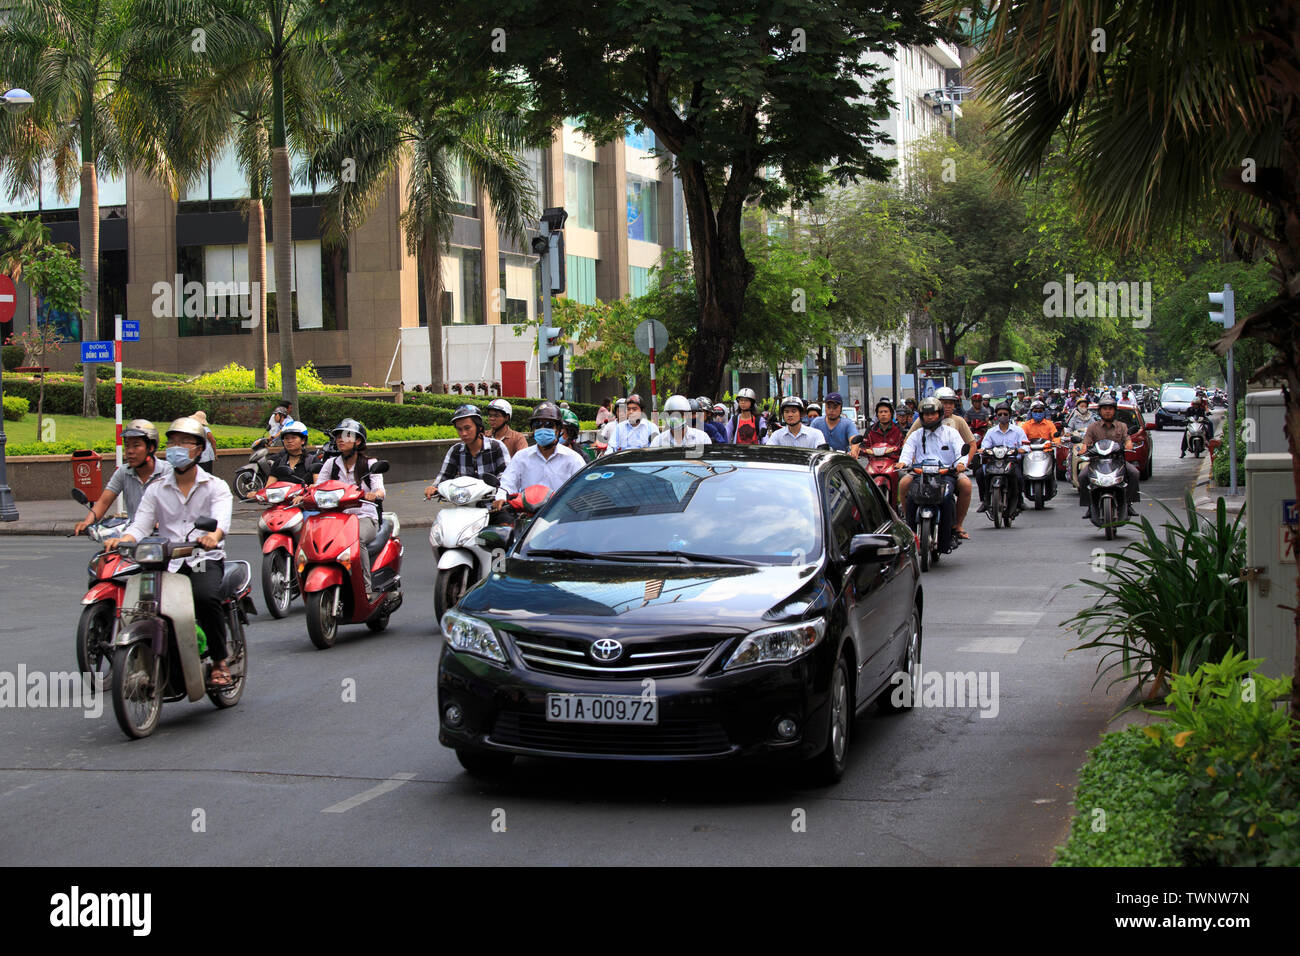 Ho Chi Minh city, Viet Nam - April 21, 2014: Overview of urban trafic at Asia city, group Asian citizen on private vehicle in trafic jam, crowded, ove - Stock Image